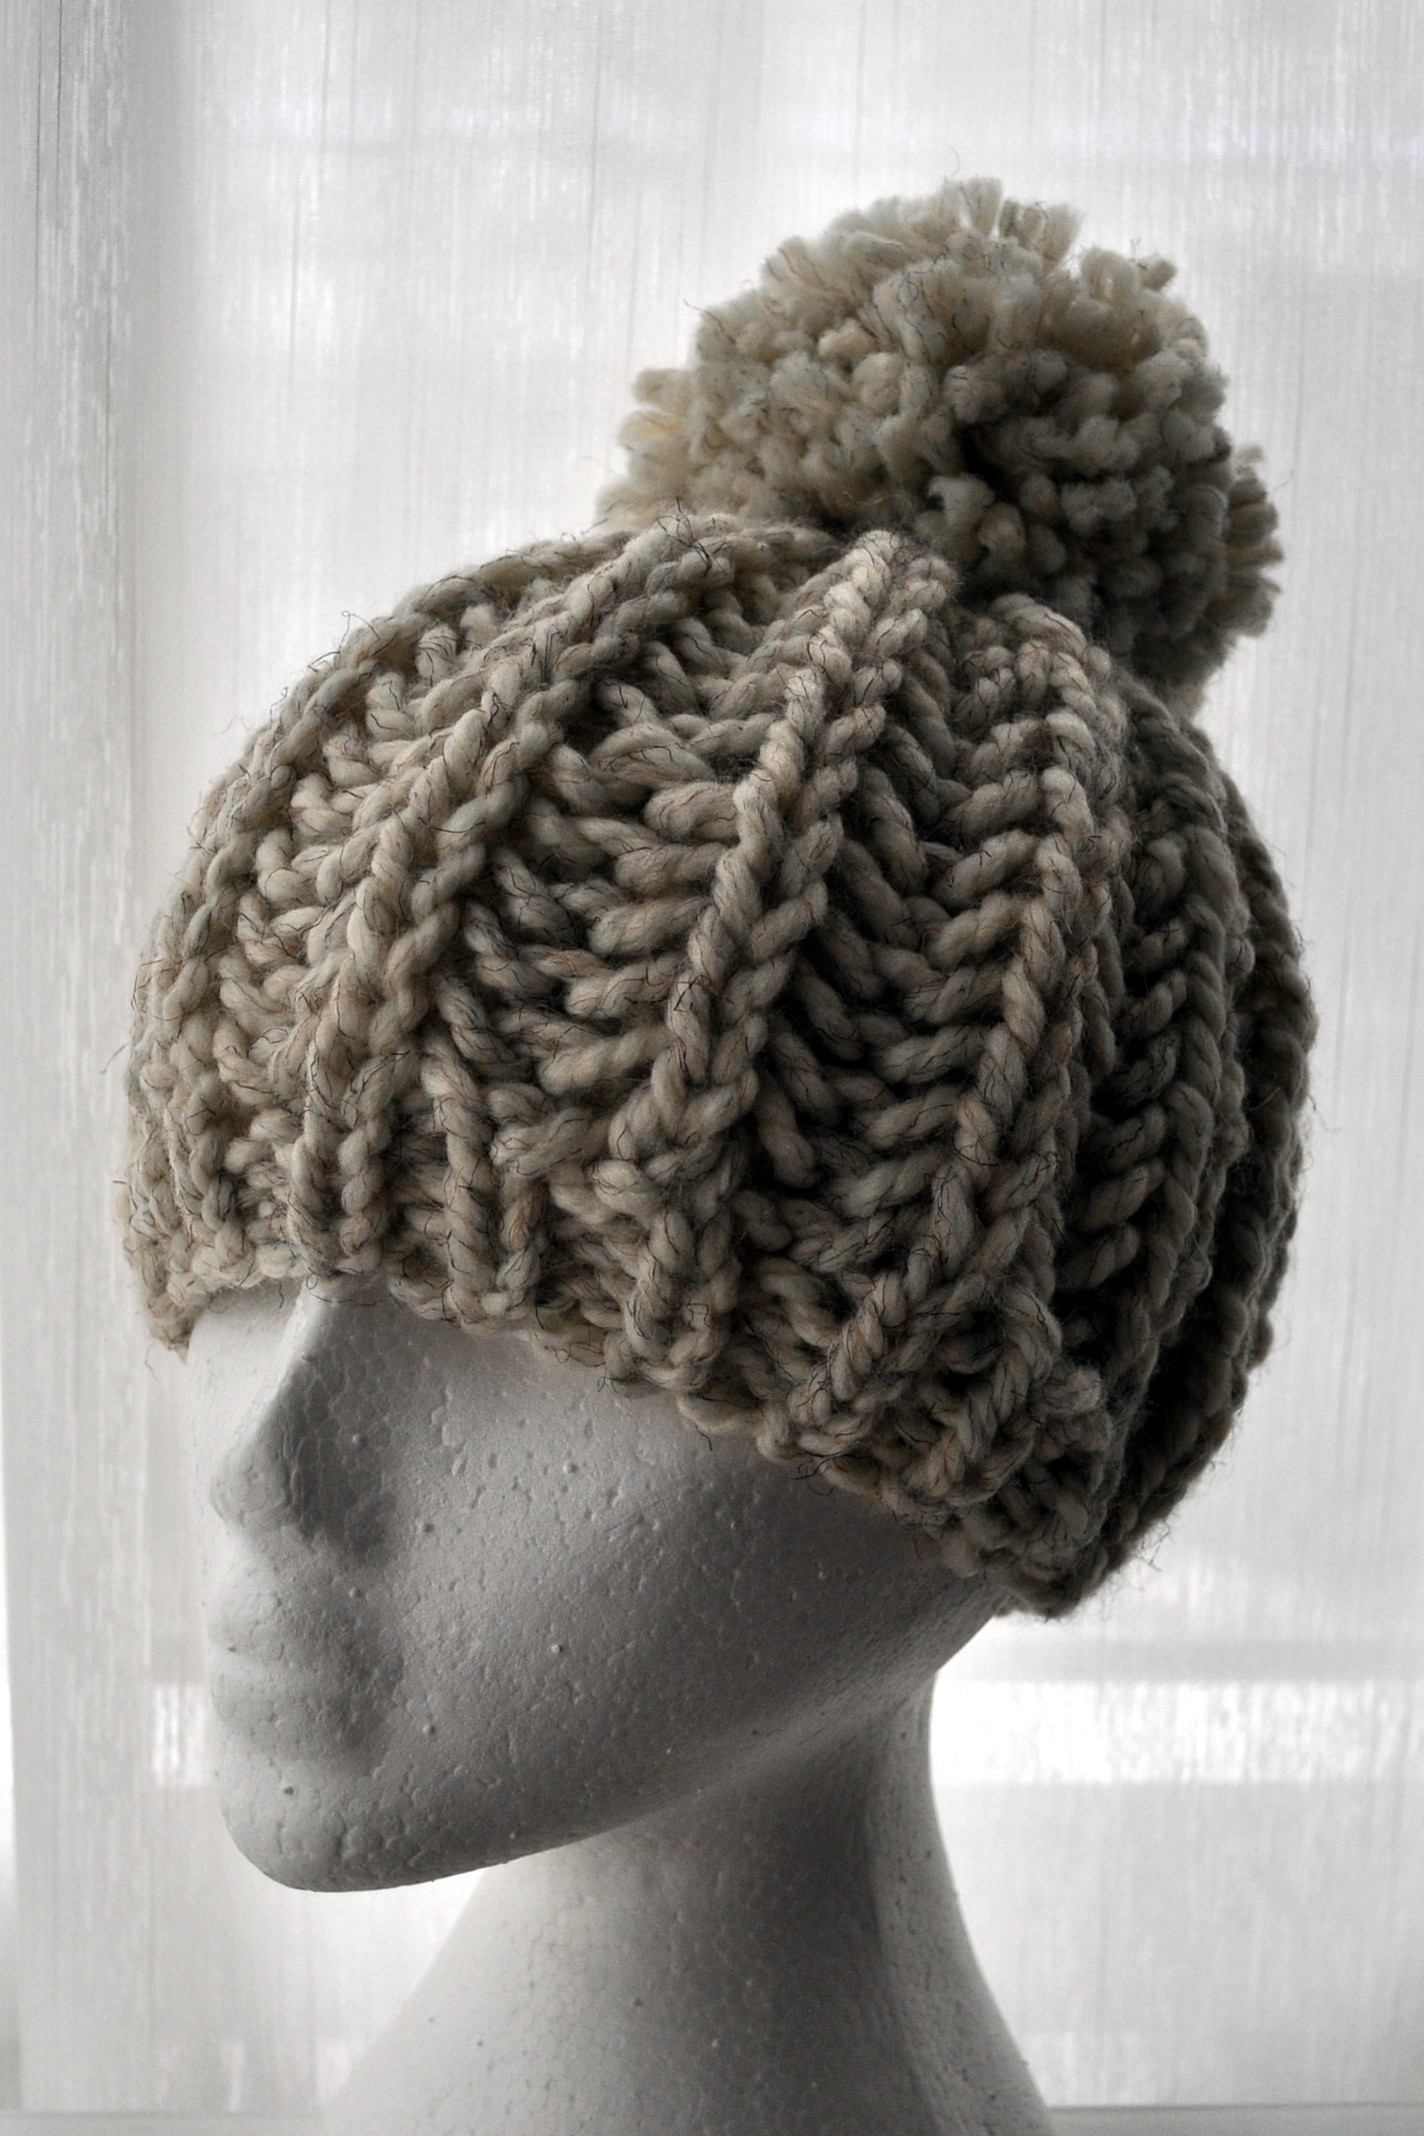 Knitting and Crochet Unique Free Pattern Knit Fisherman Ribbed Hipster Hat Of Amazing 45 Photos Knitting and Crochet